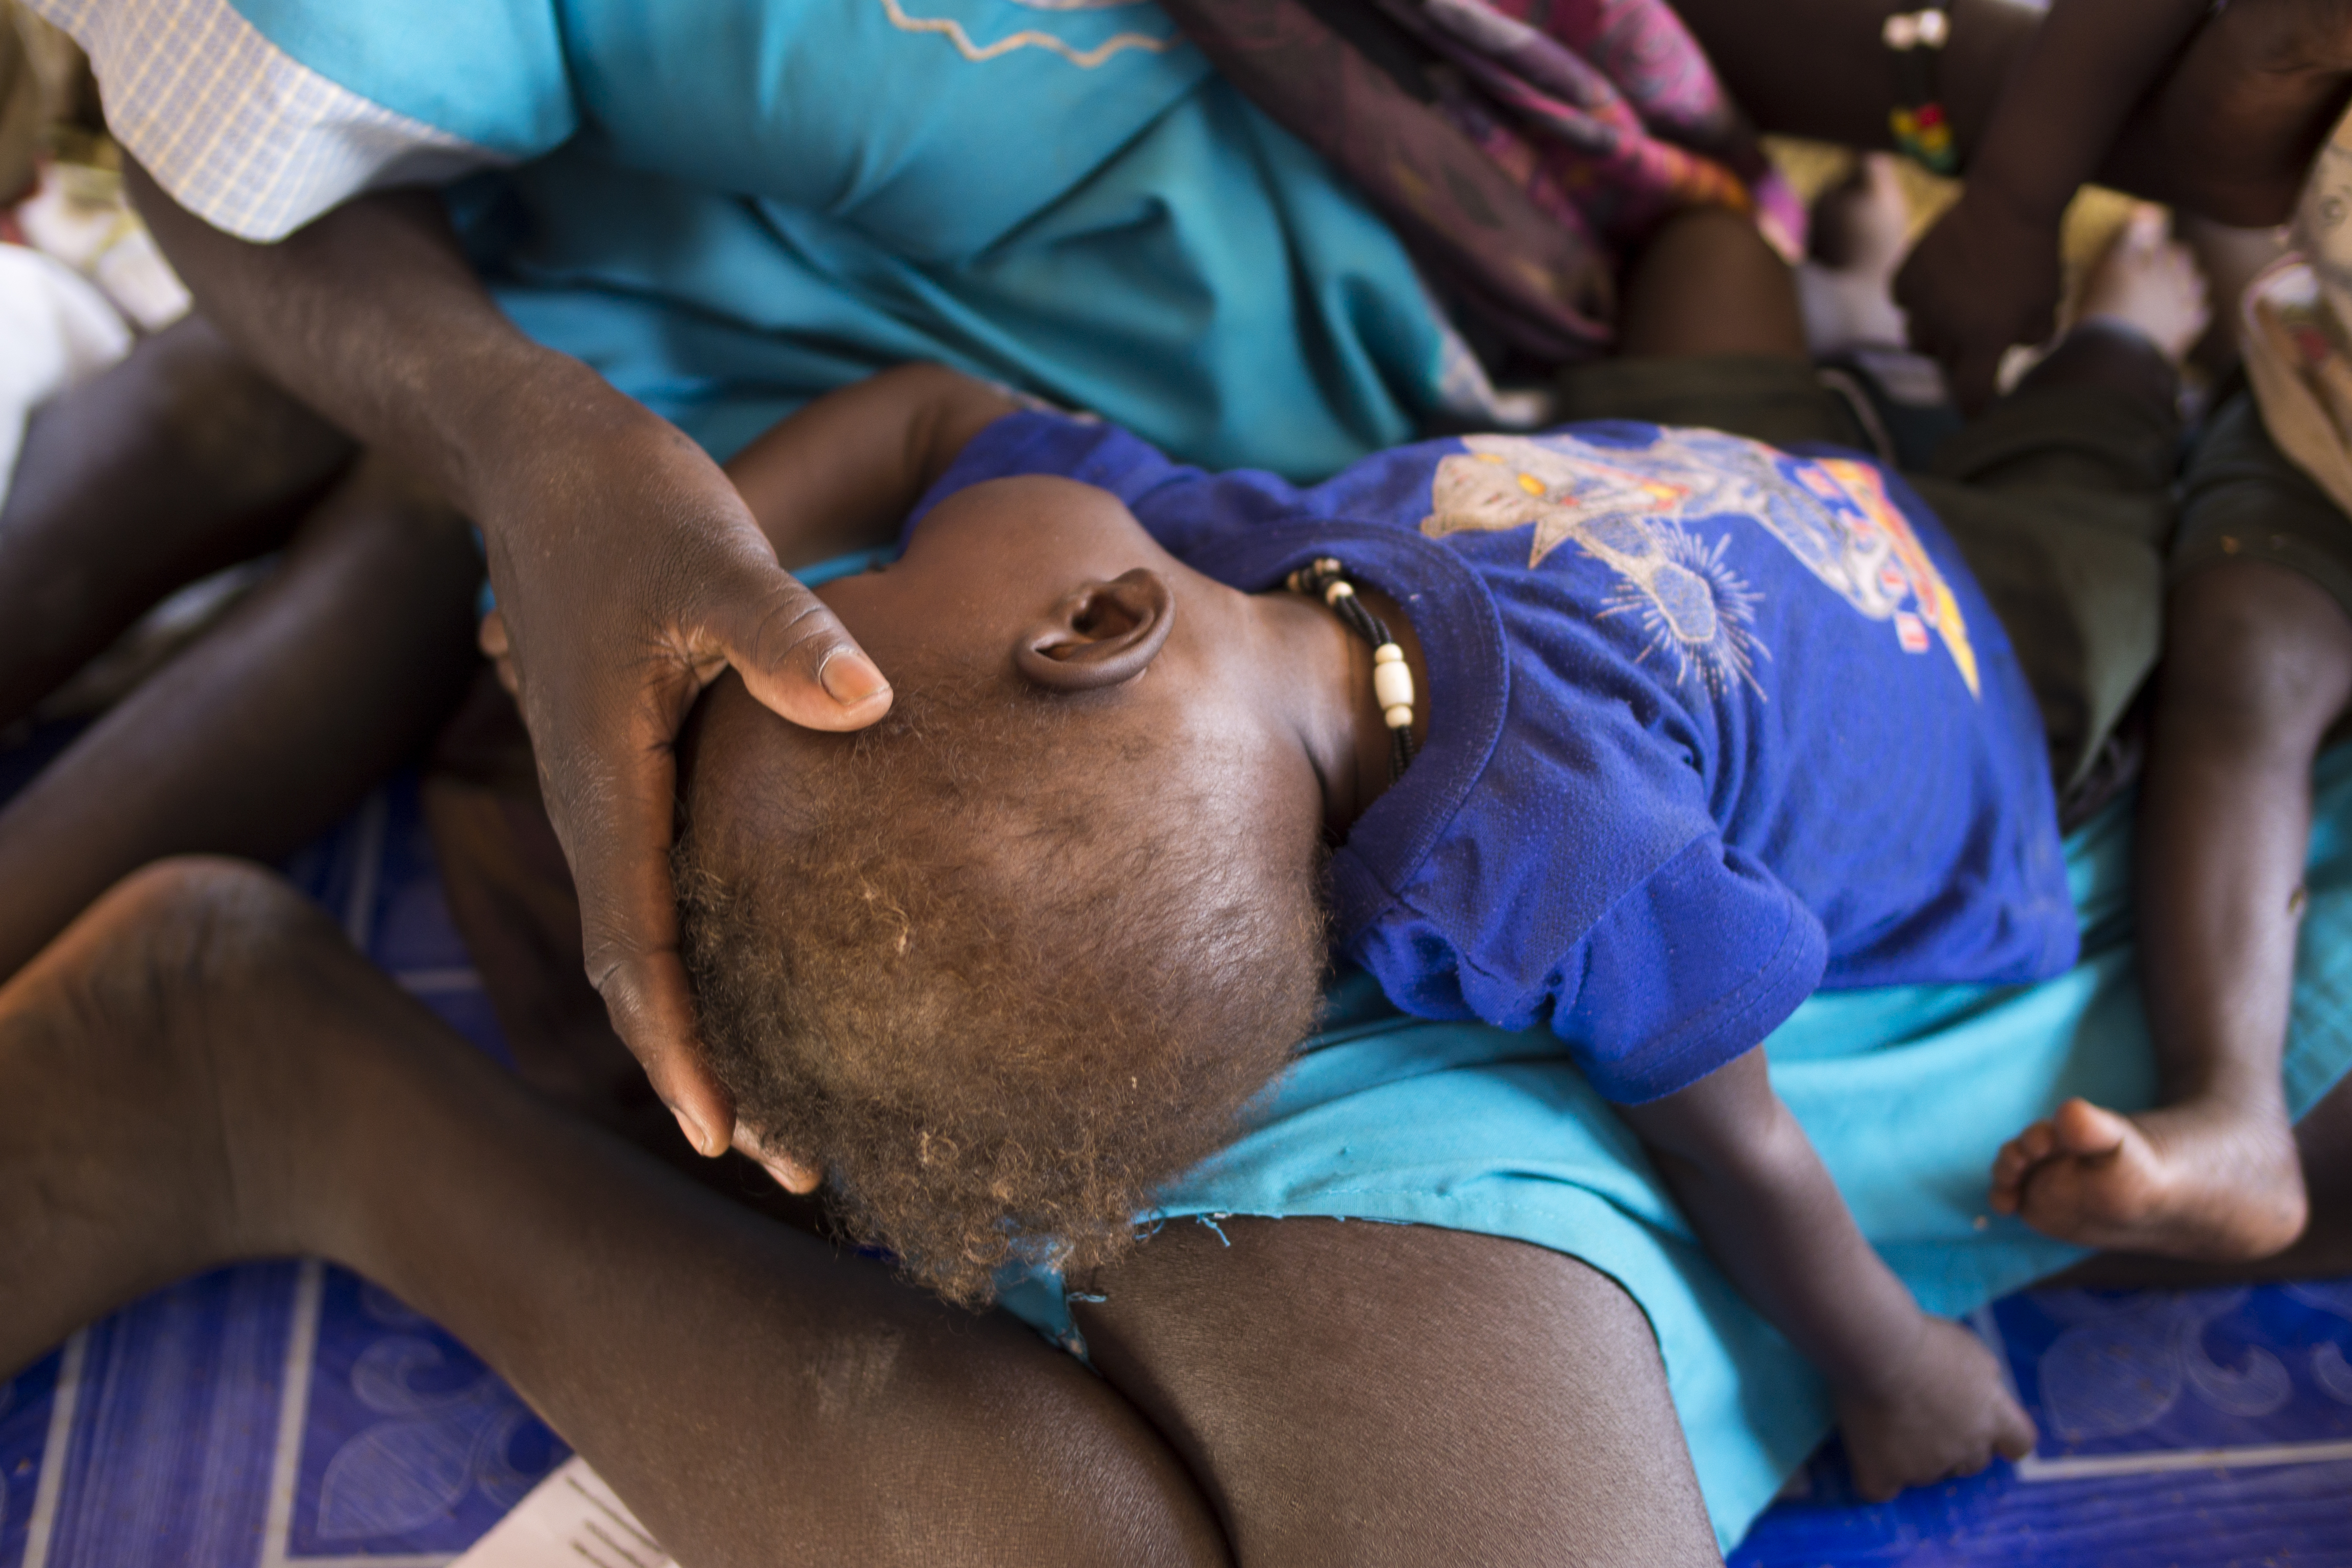 Dit, aged 8 months, at the Concern nutrition center in the Protection of Civilians (POC) site at the UN base in Juba, South Sudan.